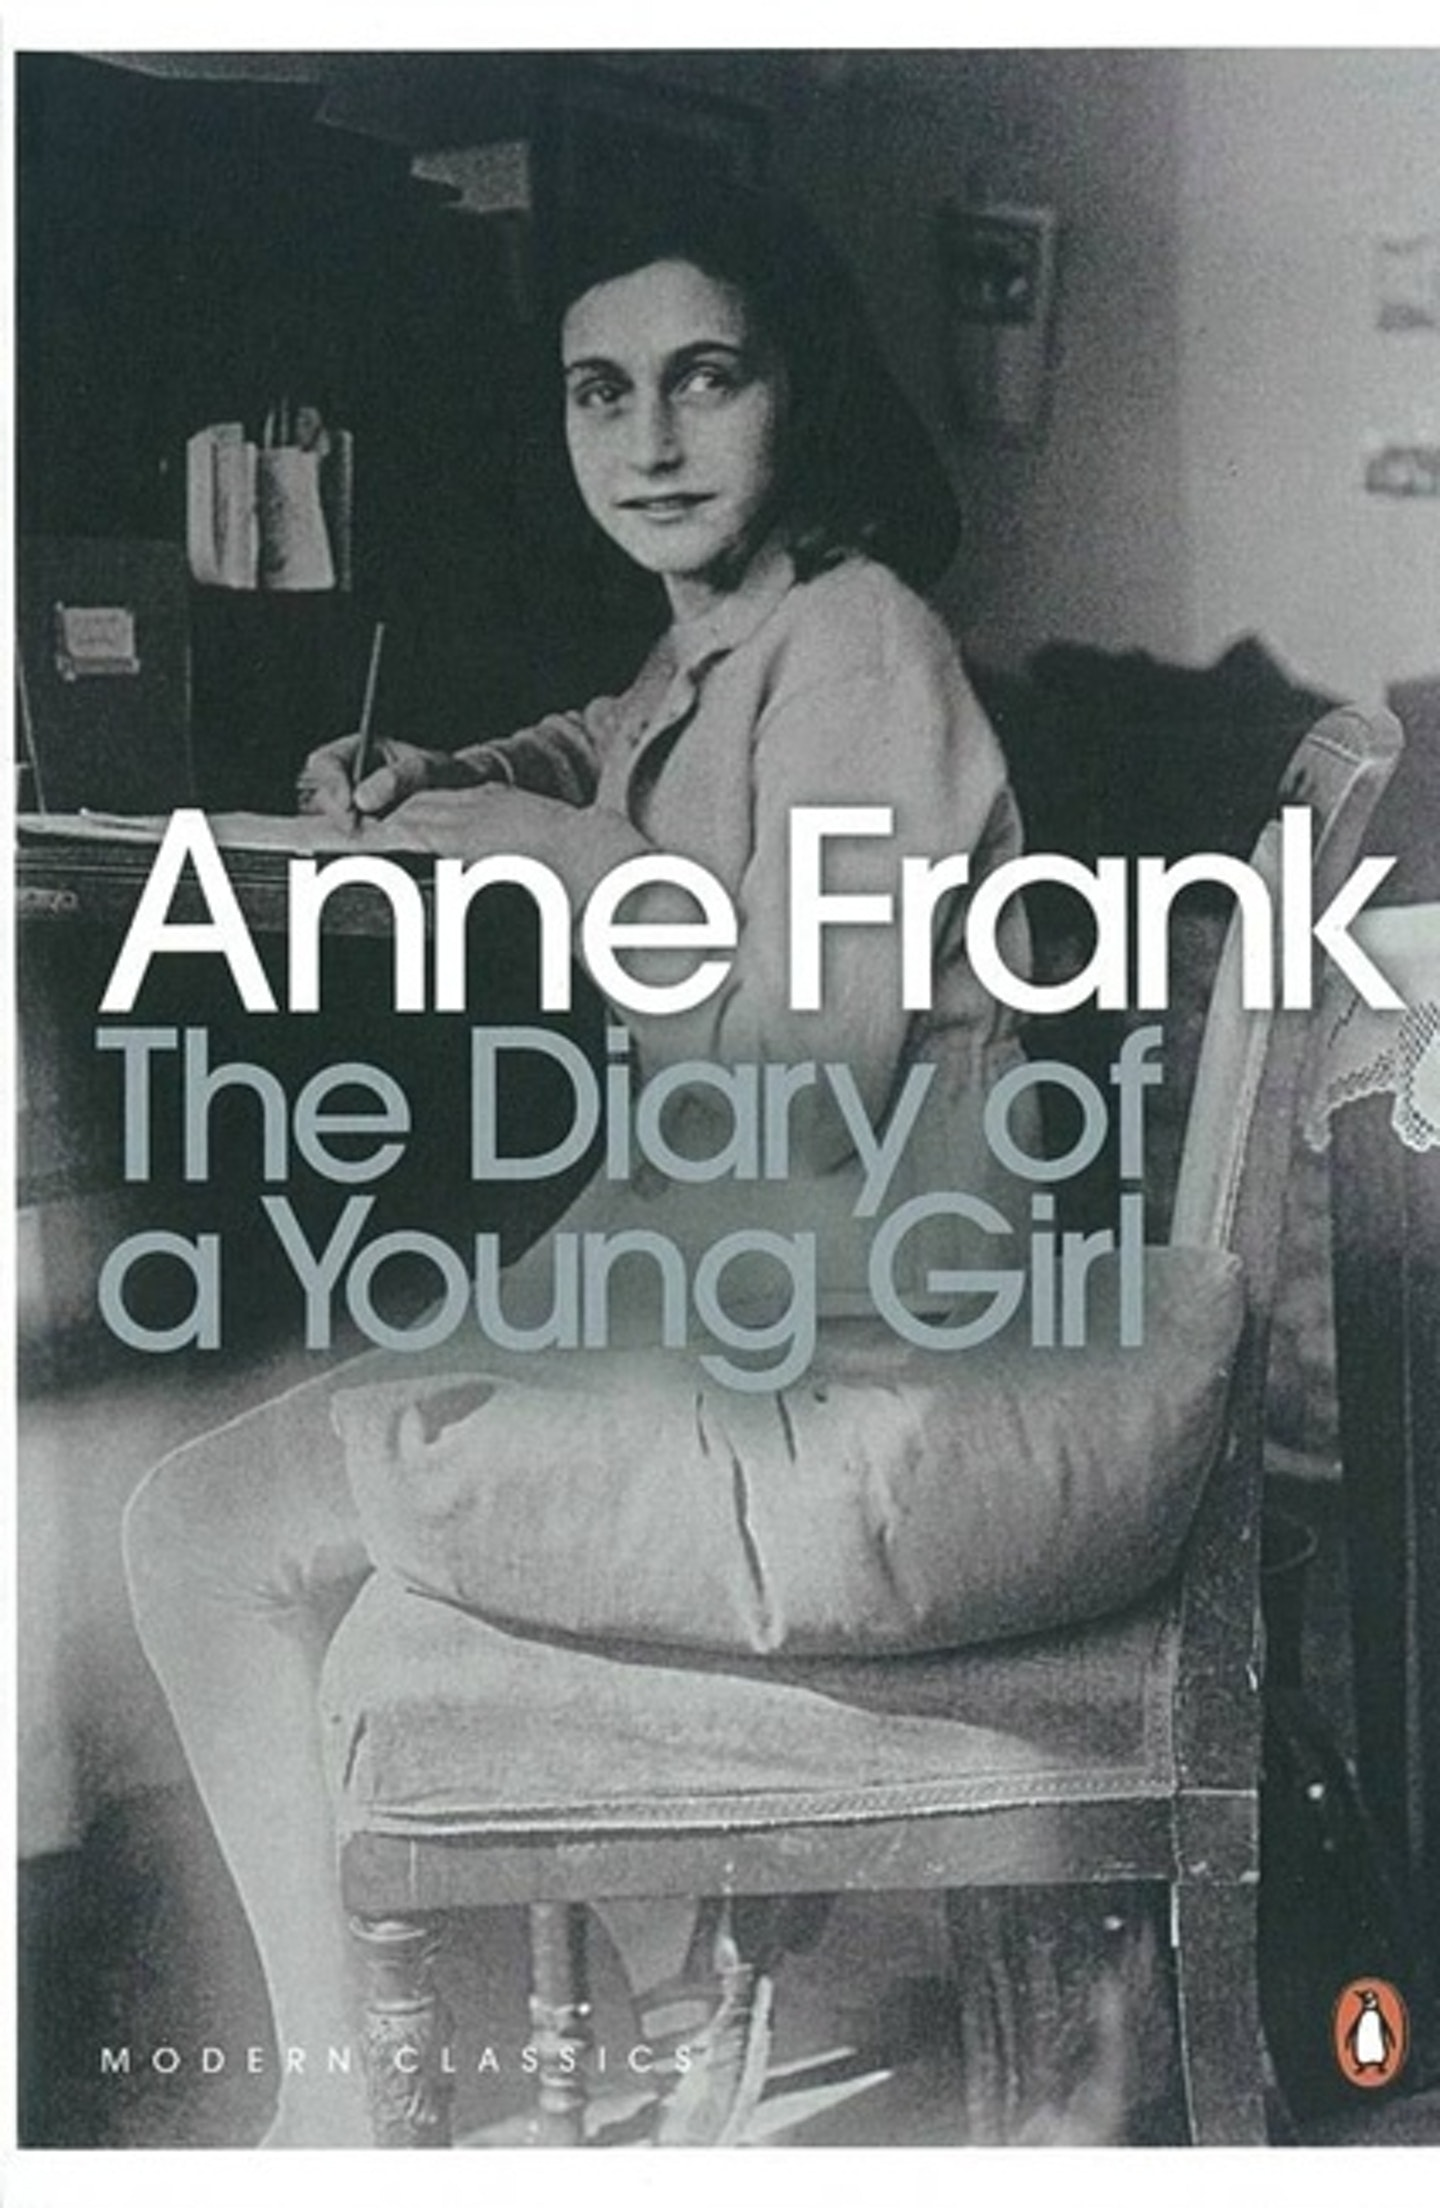 The Diary of a Young Girl by Anne Frank (Cover)